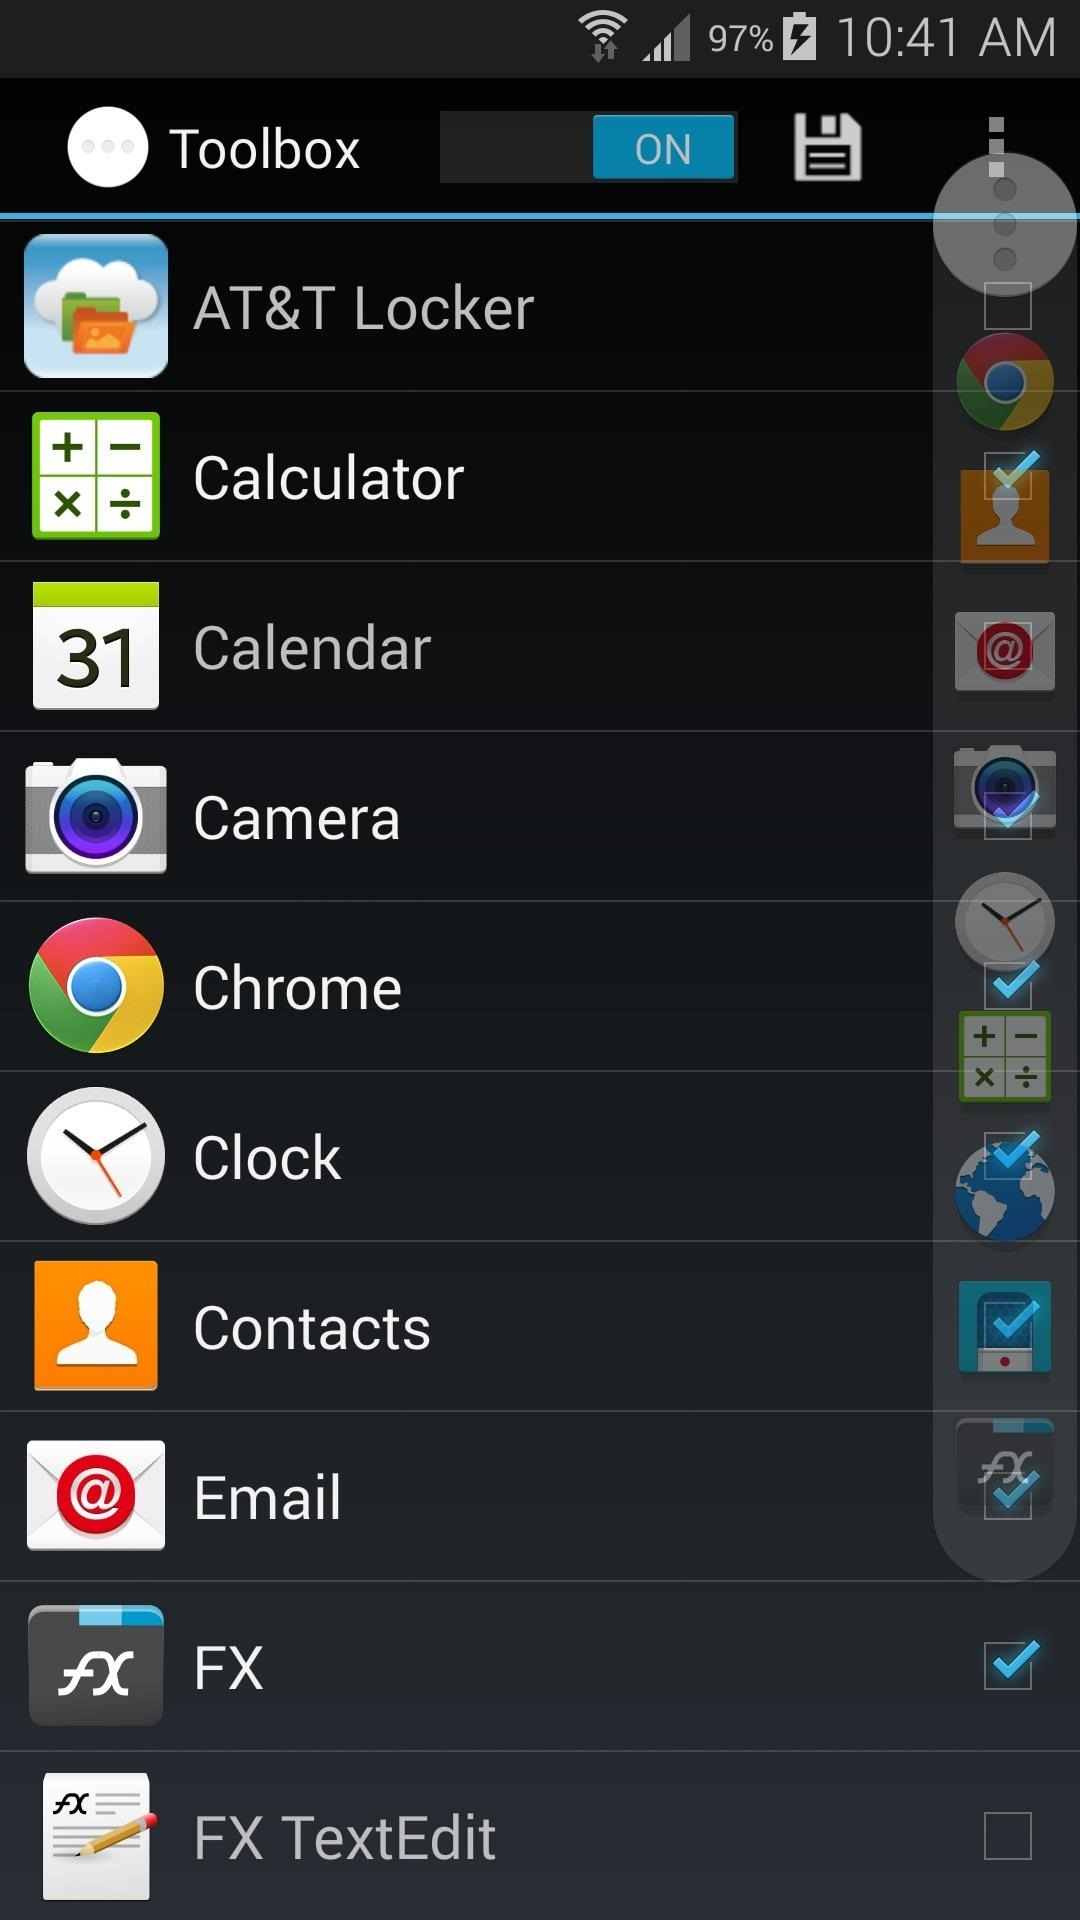 How to Add More Than Just 5 Apps to Your Galaxy S5's Toolbox Button